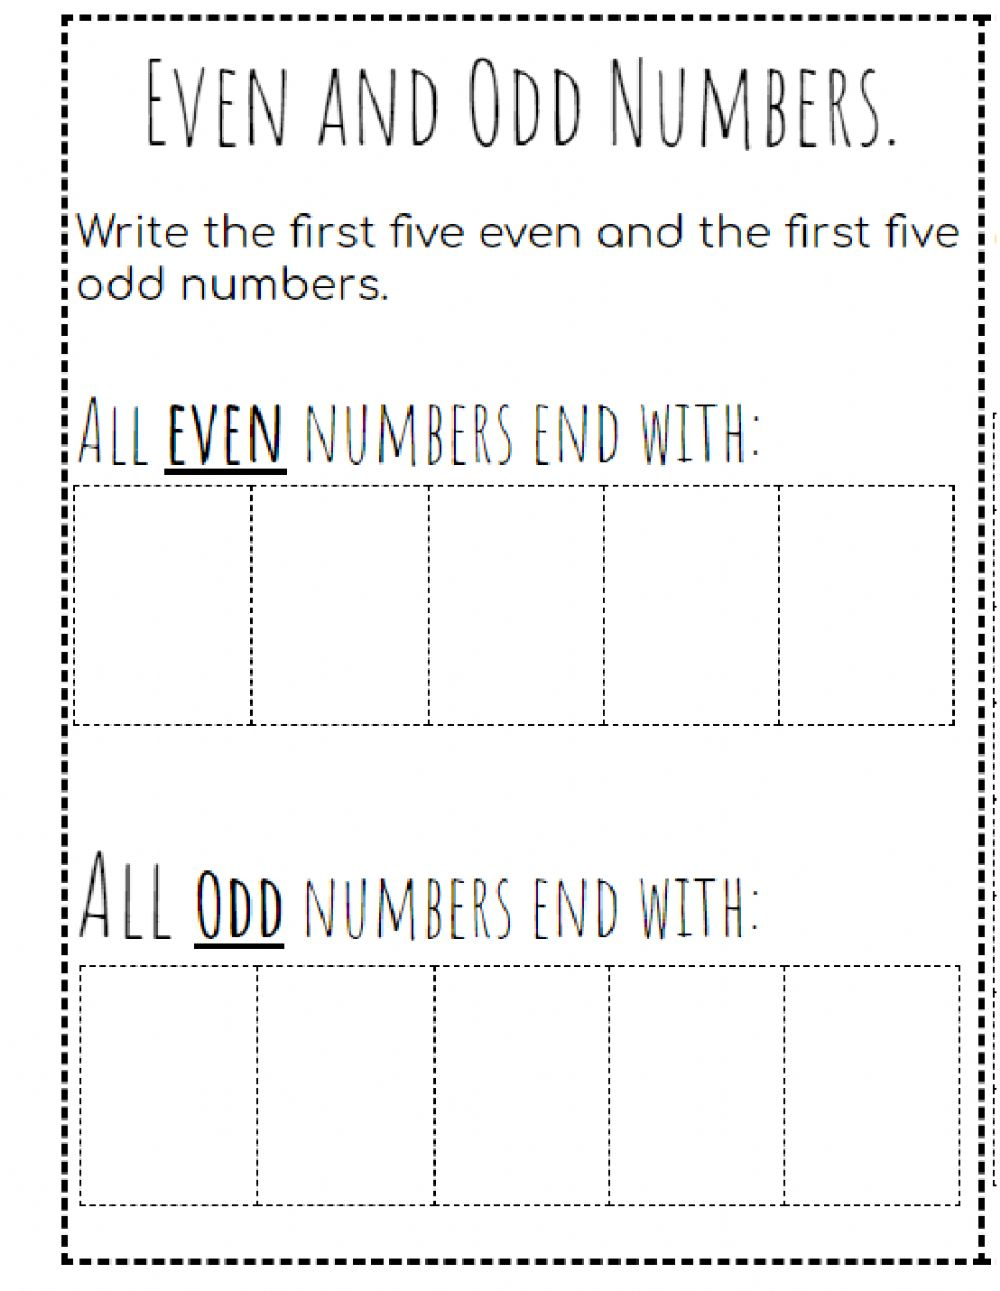 hight resolution of Even and Odd numbers interactive worksheet